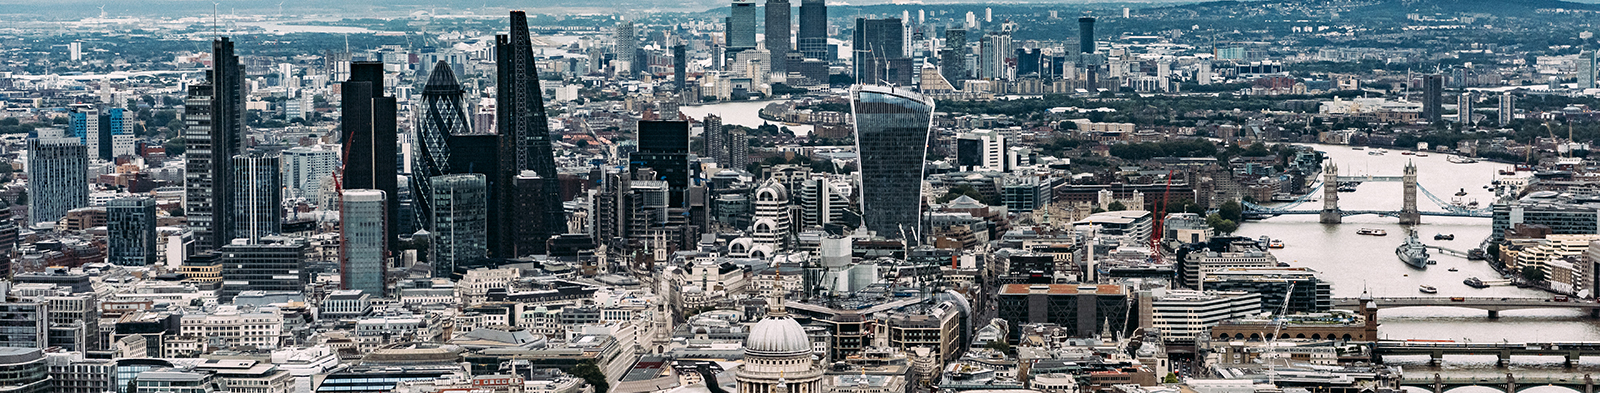 London skyline from above.